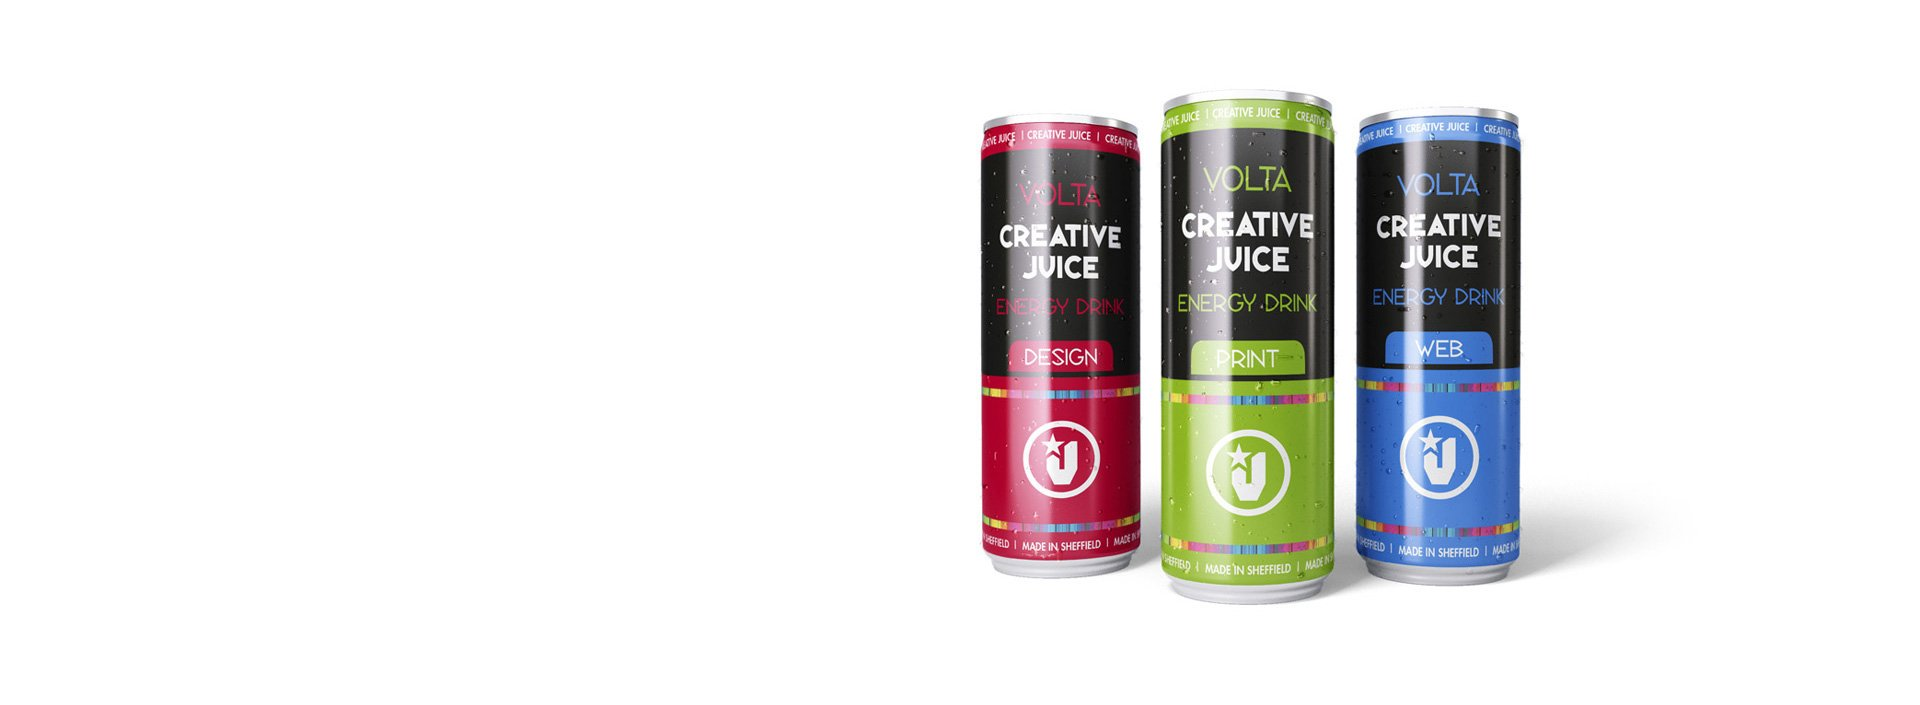 volta creative energy drink